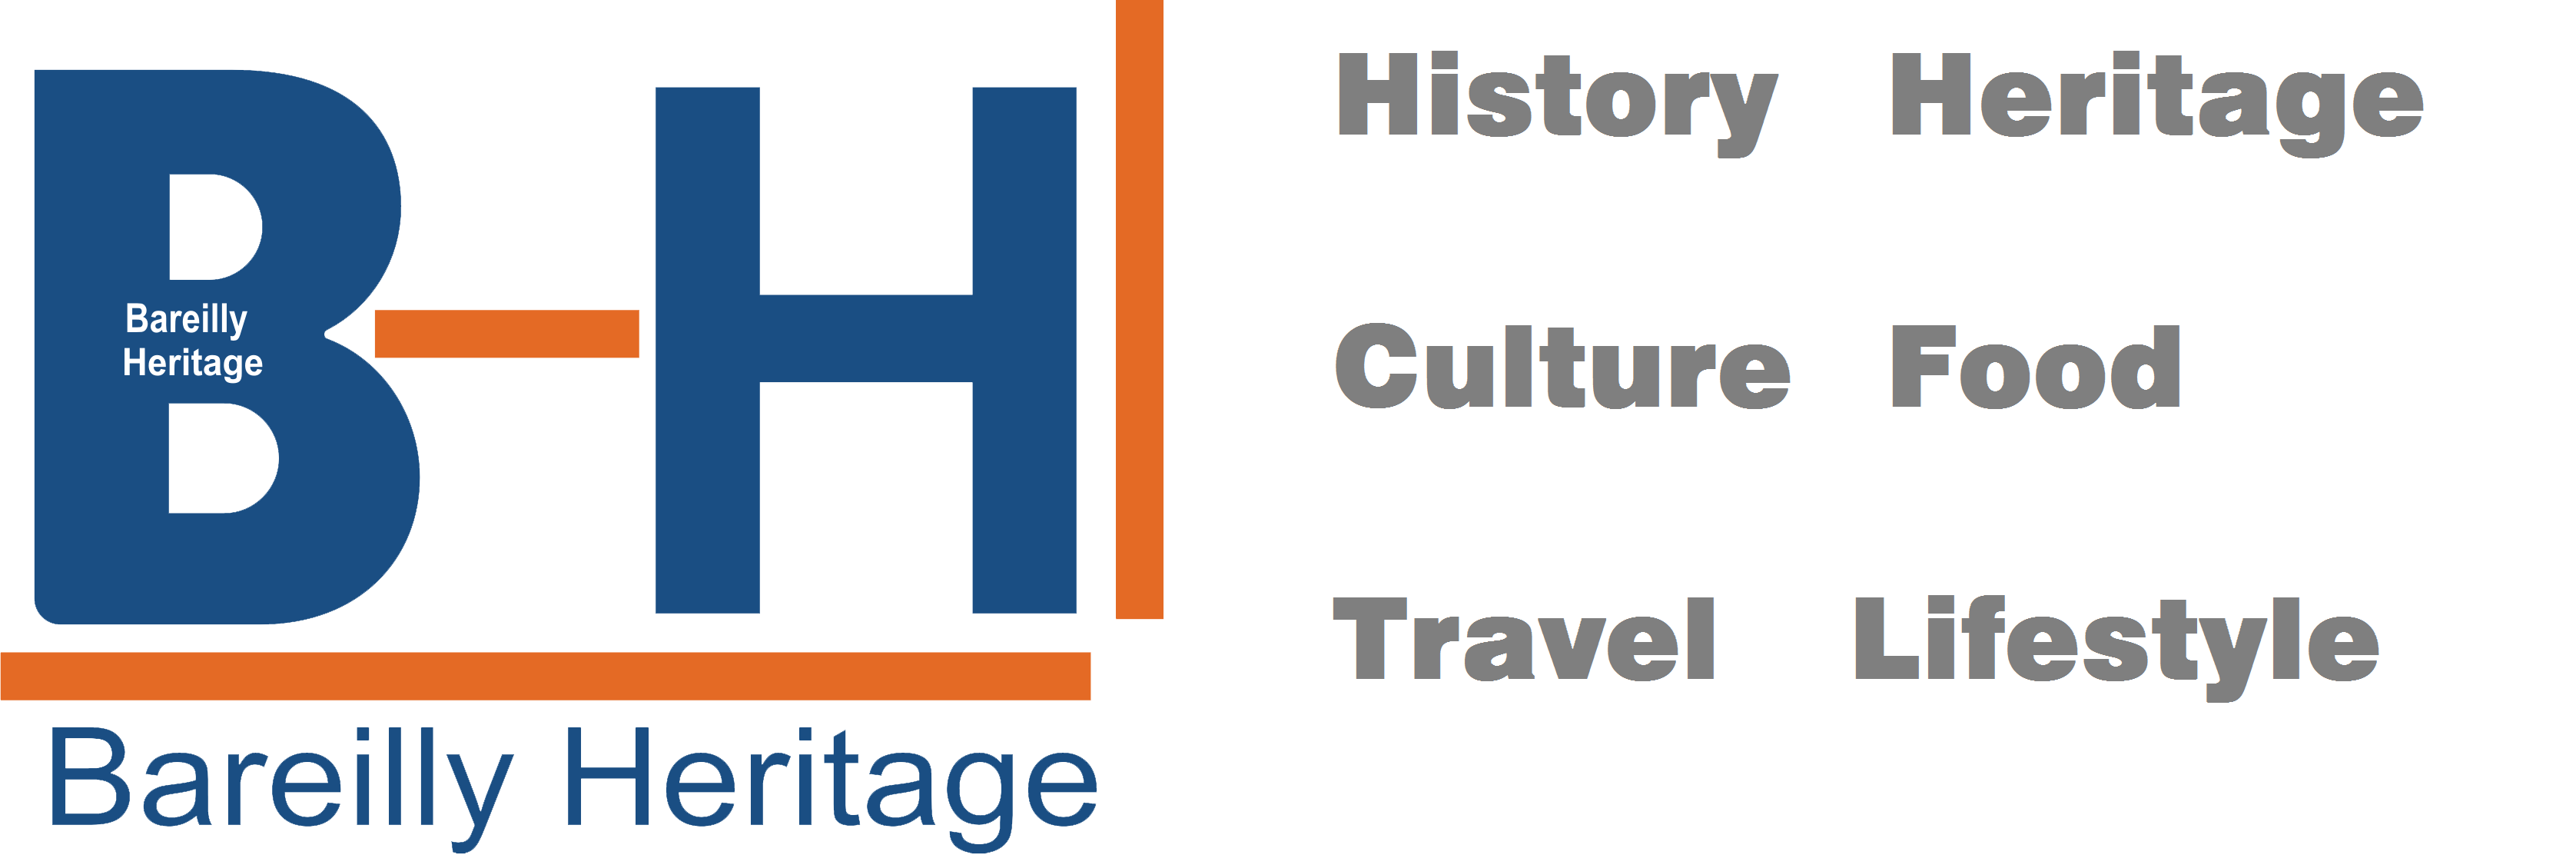 News, Heritage,Culture, Food, Lifestyle, Travelling